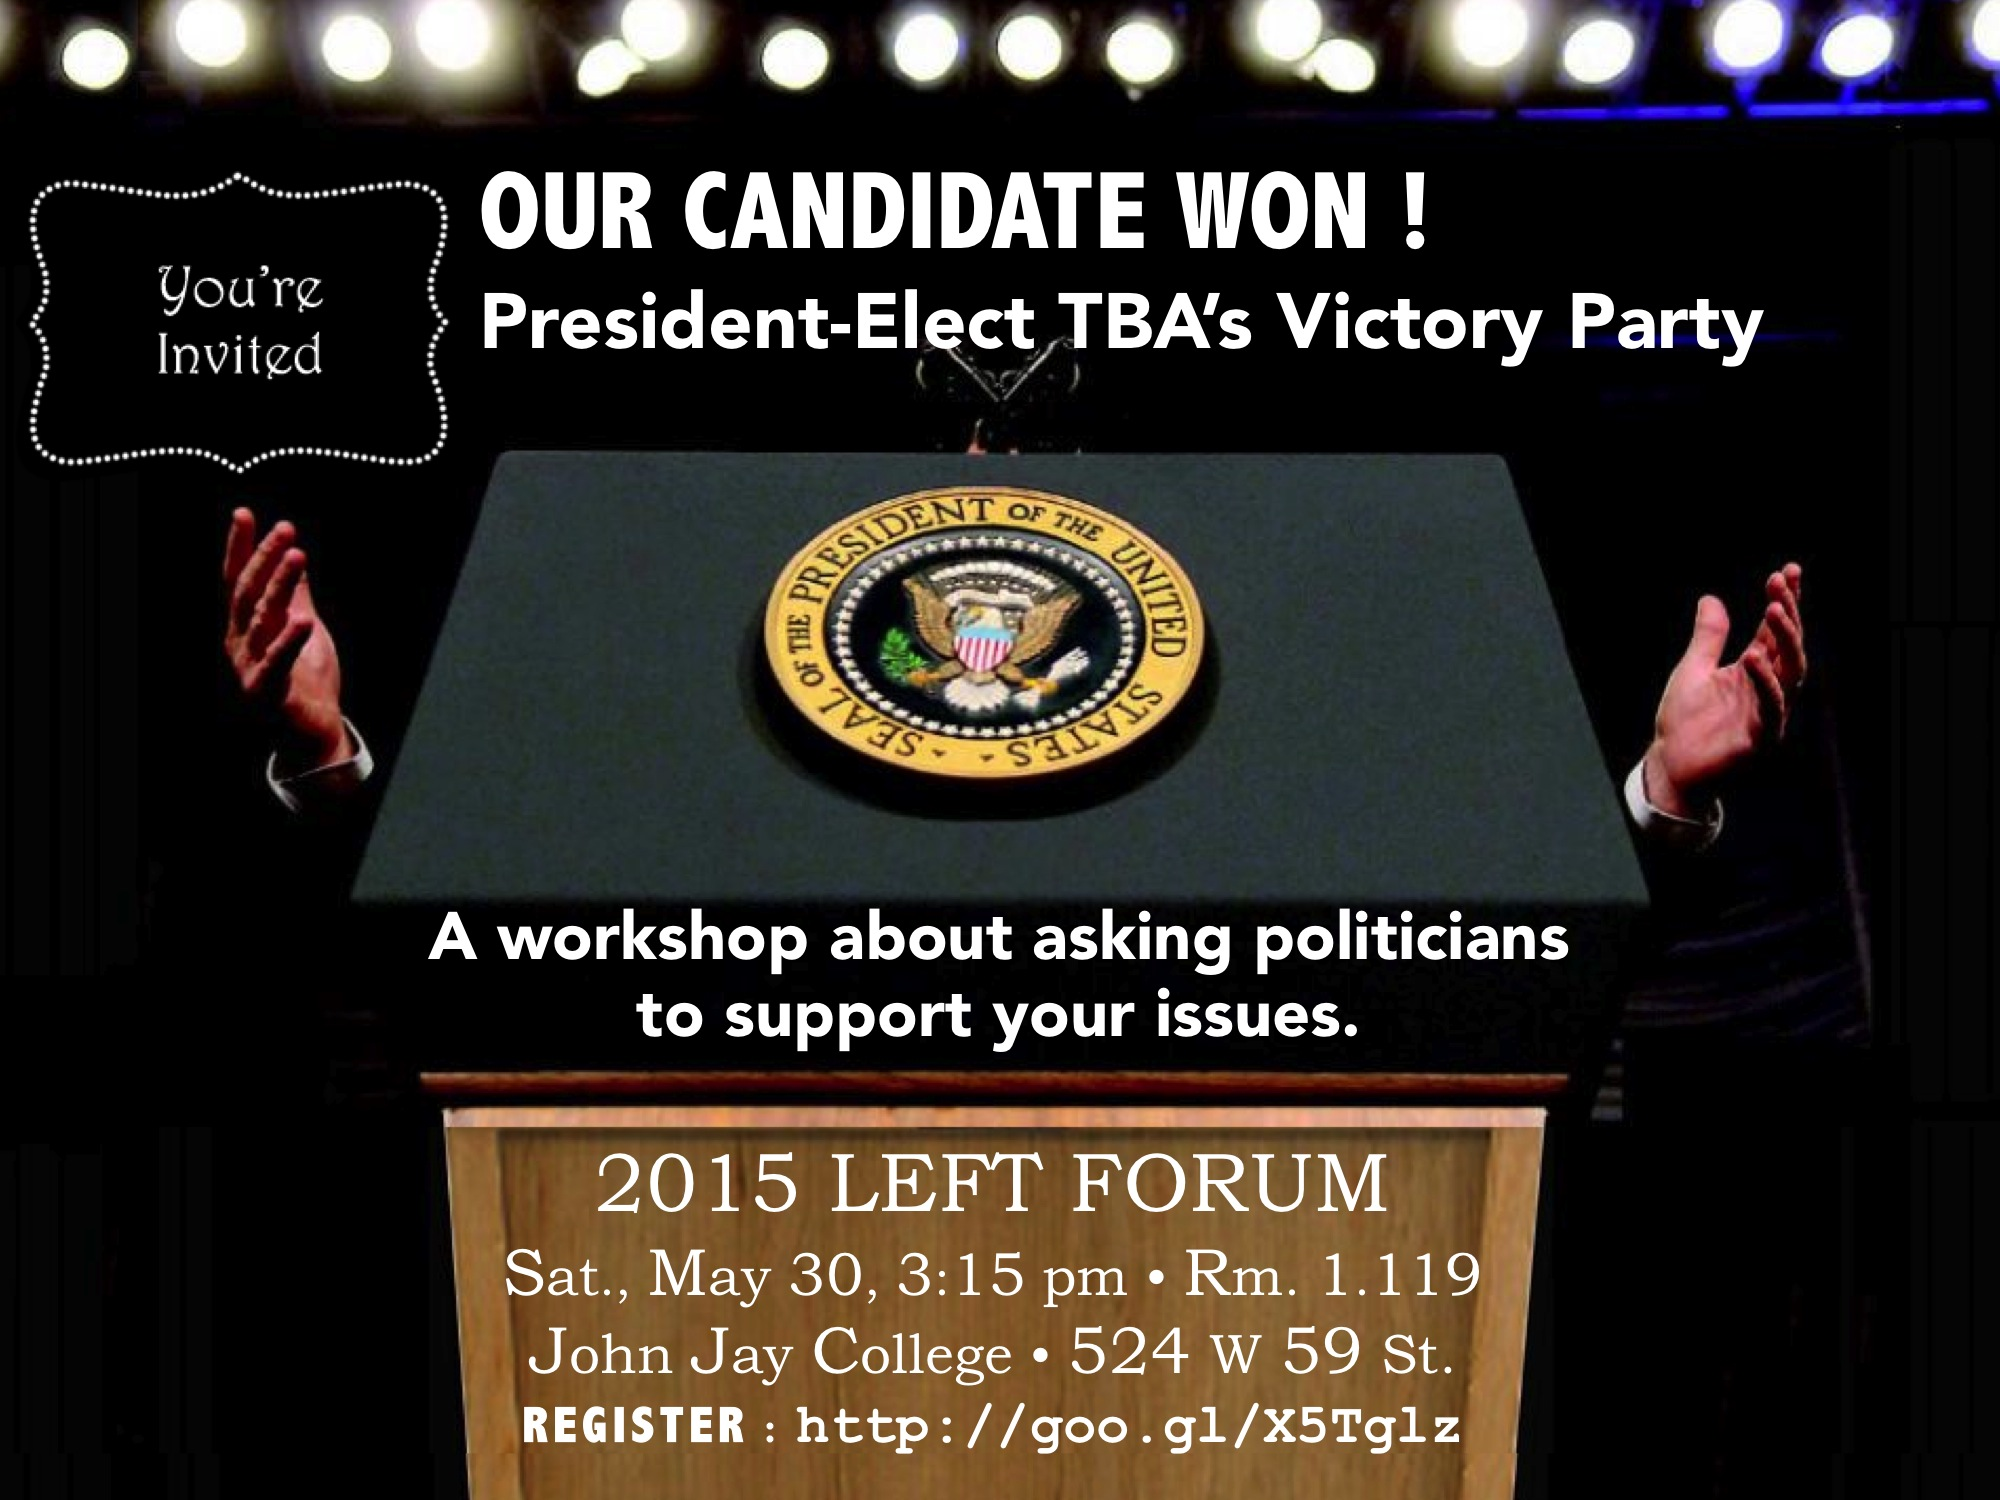 Register to attend   Our Candidate Won ,a  Left Forum  workshop about makingpolitical demands.(SPONSORED)